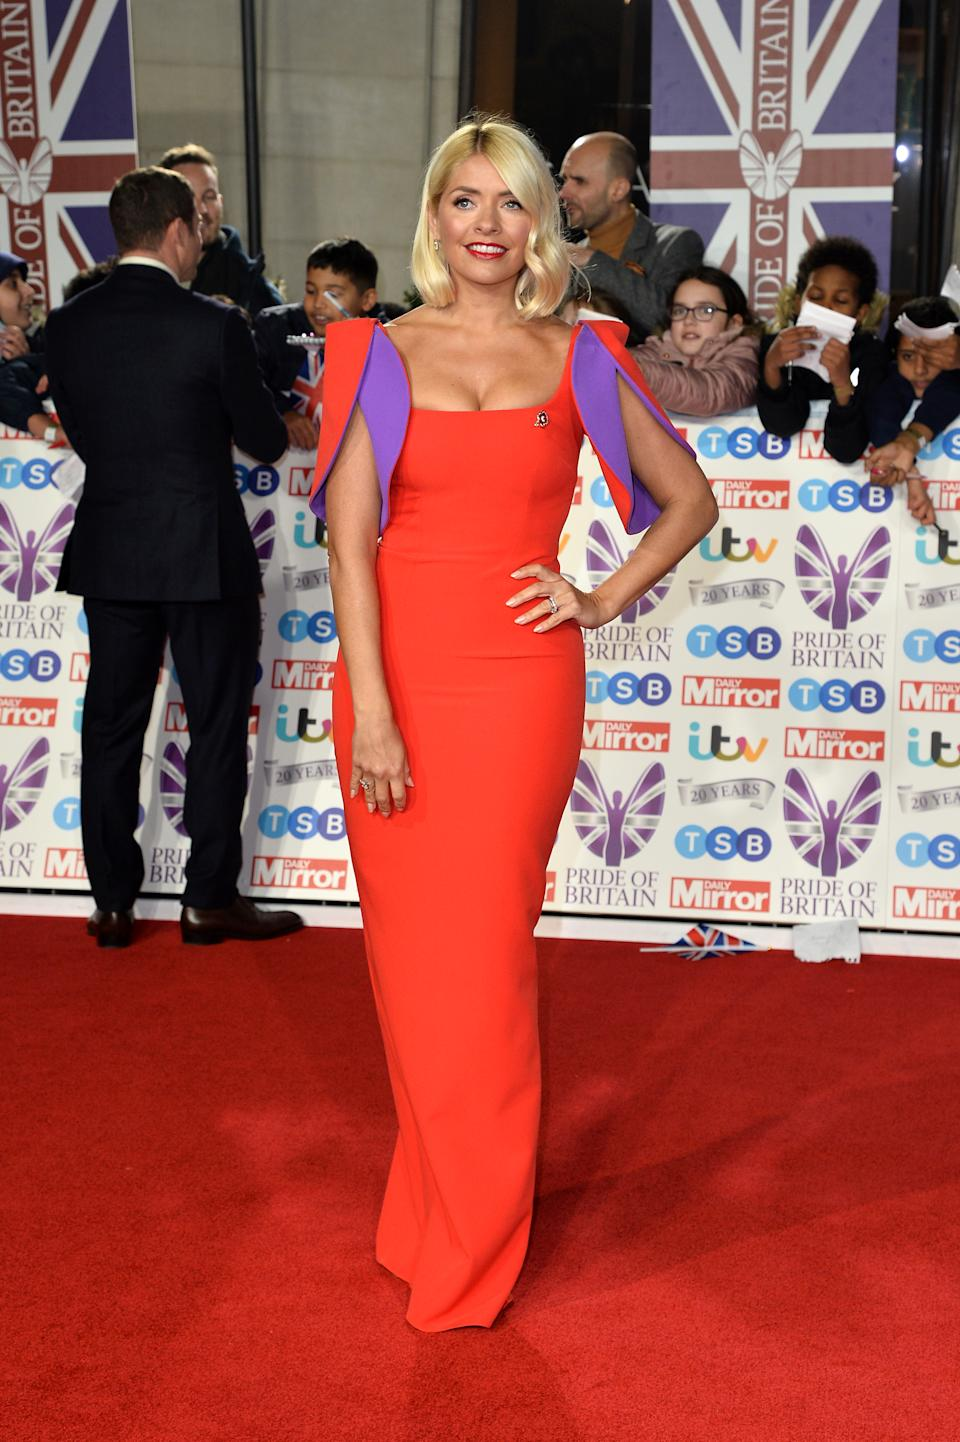 Holly Willoughby at the Pride Of Britain Awards 2019 wearing Safiyaa. [Photo: Getty]